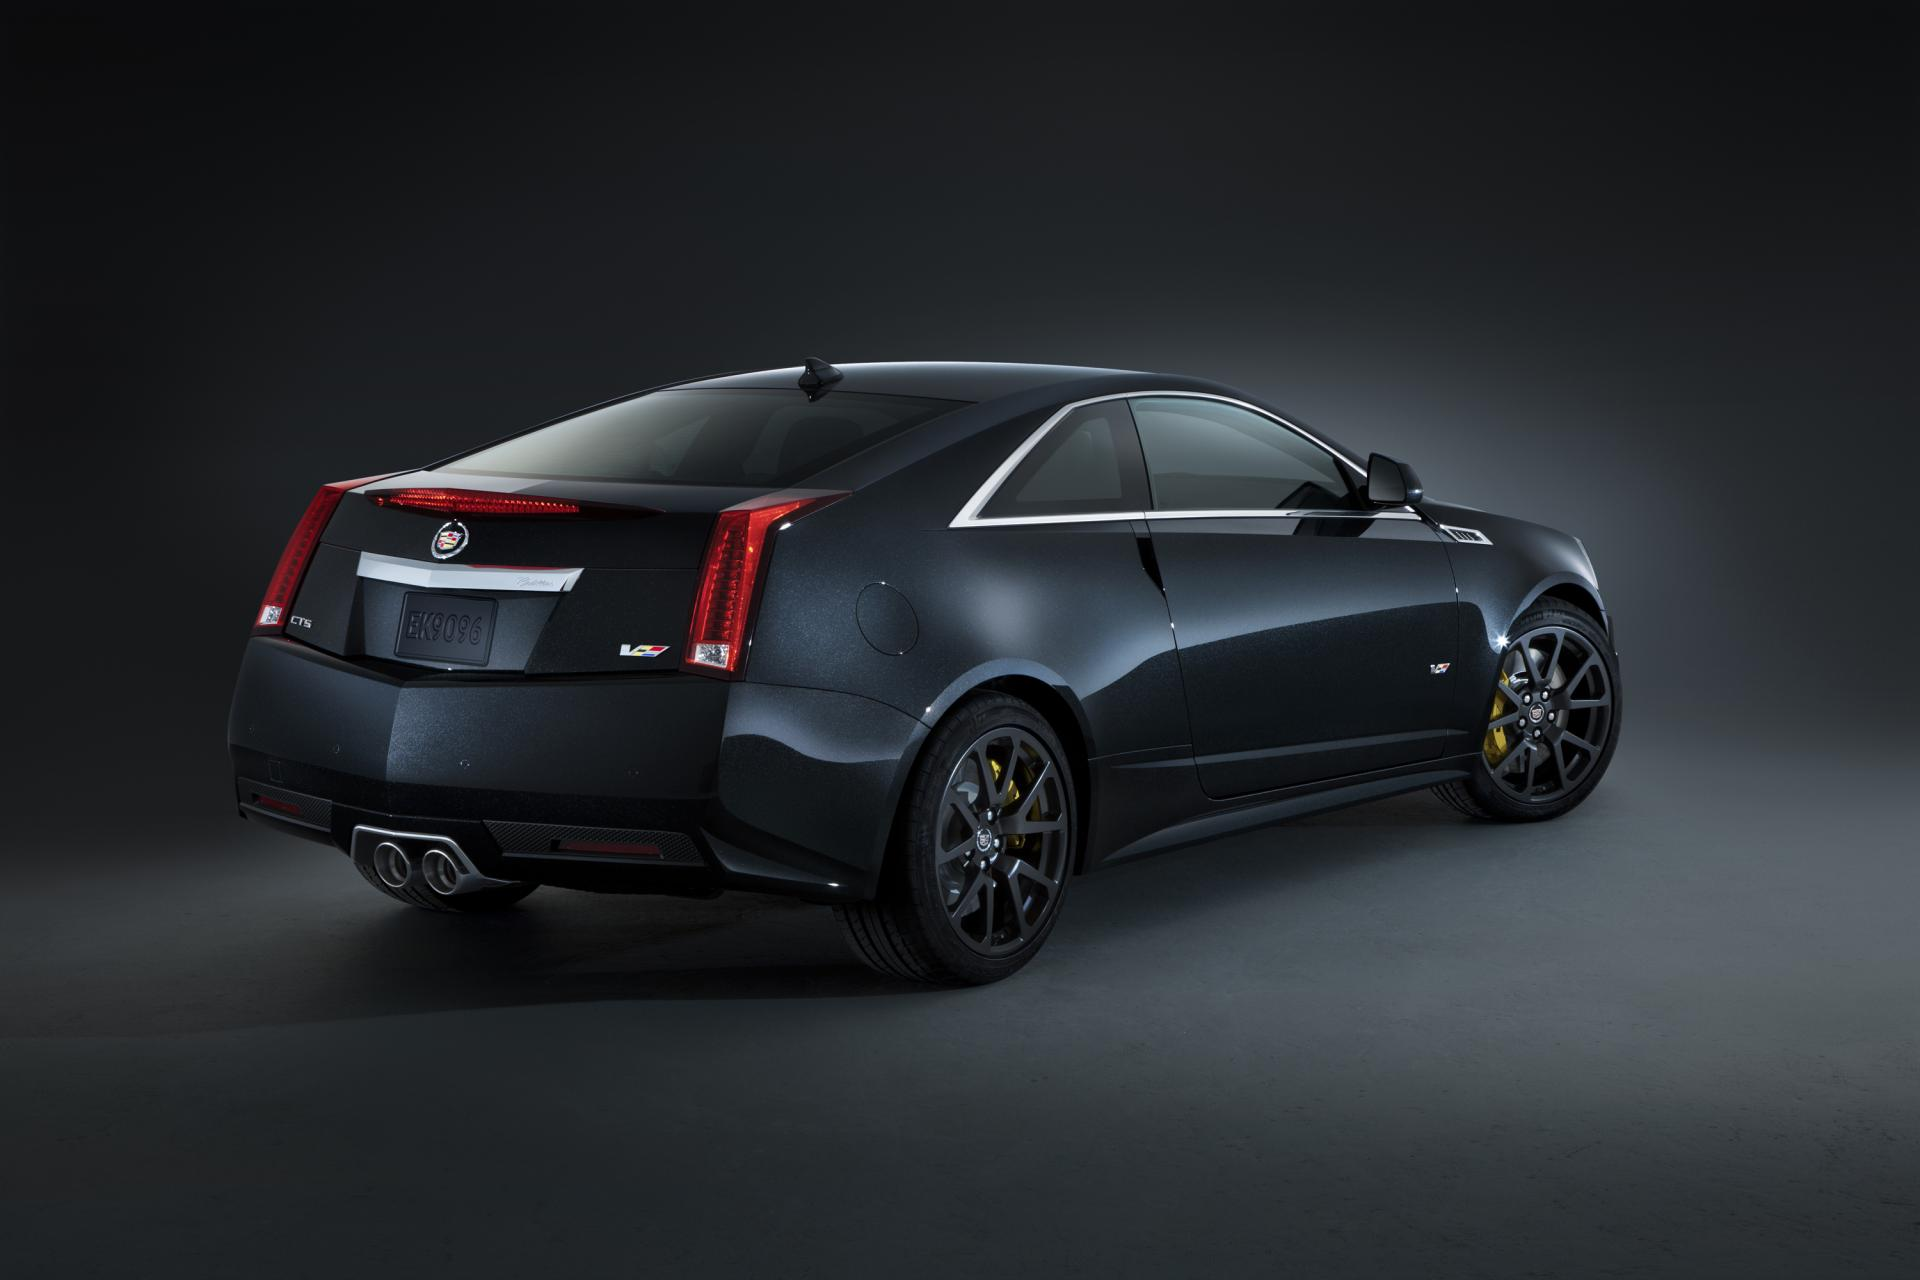 2012 Cadillac Cts Coupe #19